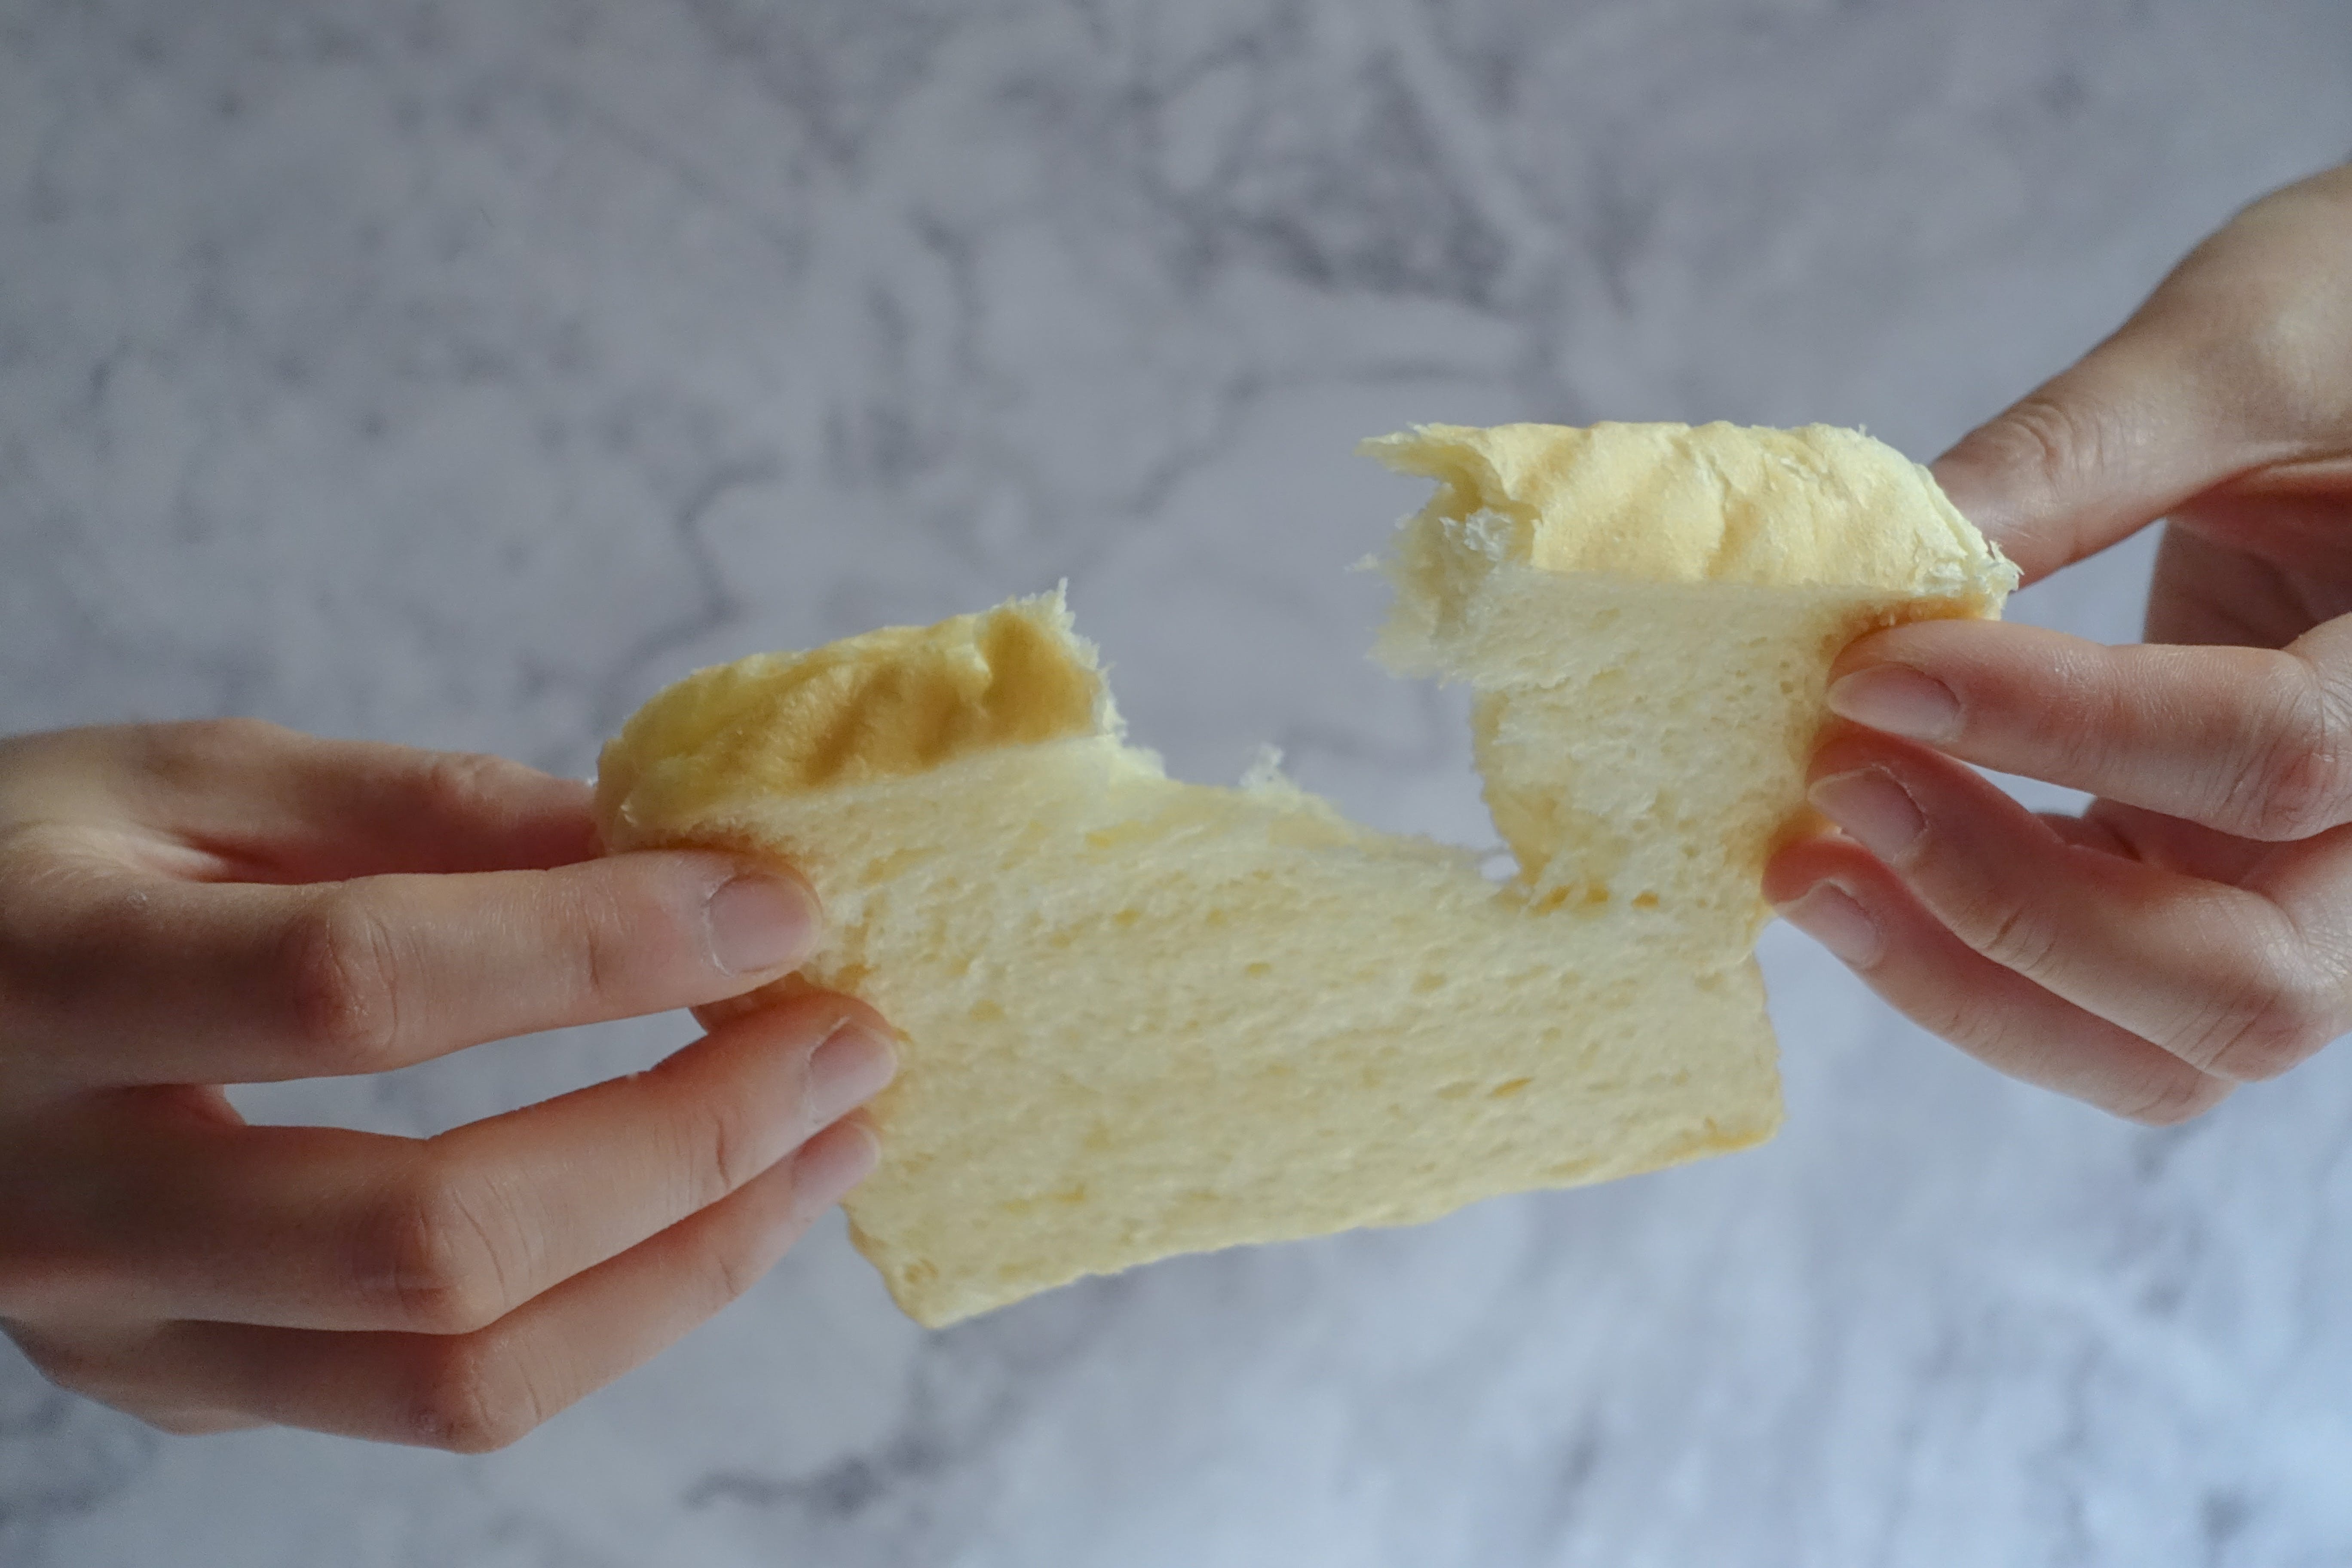 Person Holding Slice of Loaf Bread